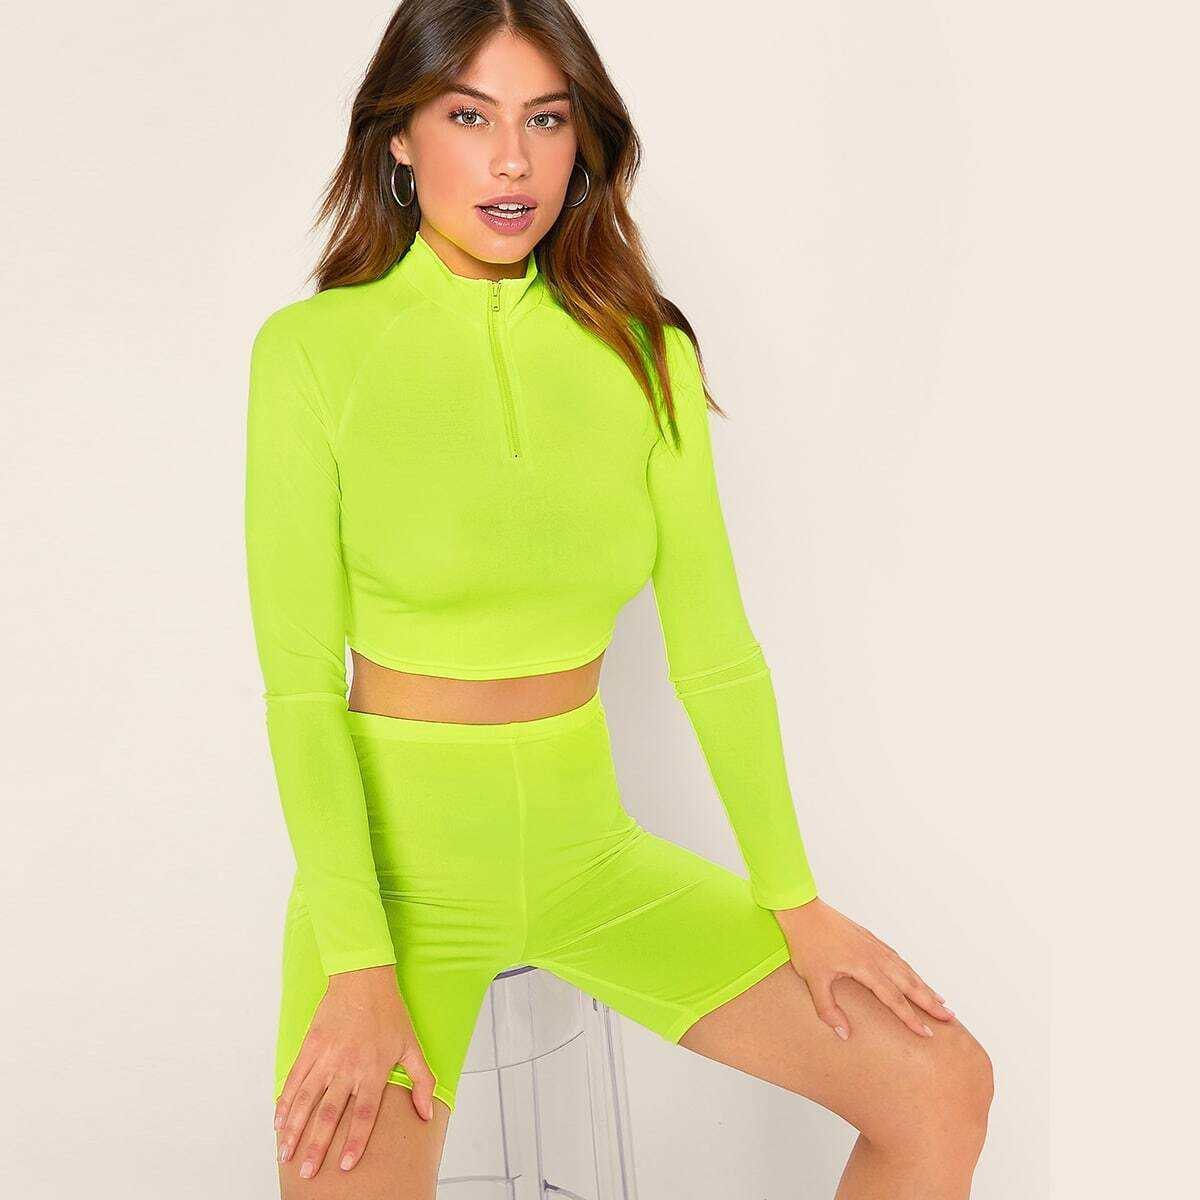 Neon Lime Half Zipper Front Crop Top & Cycling Shorts Set in Green Bright by ROMWE on GOOFASH